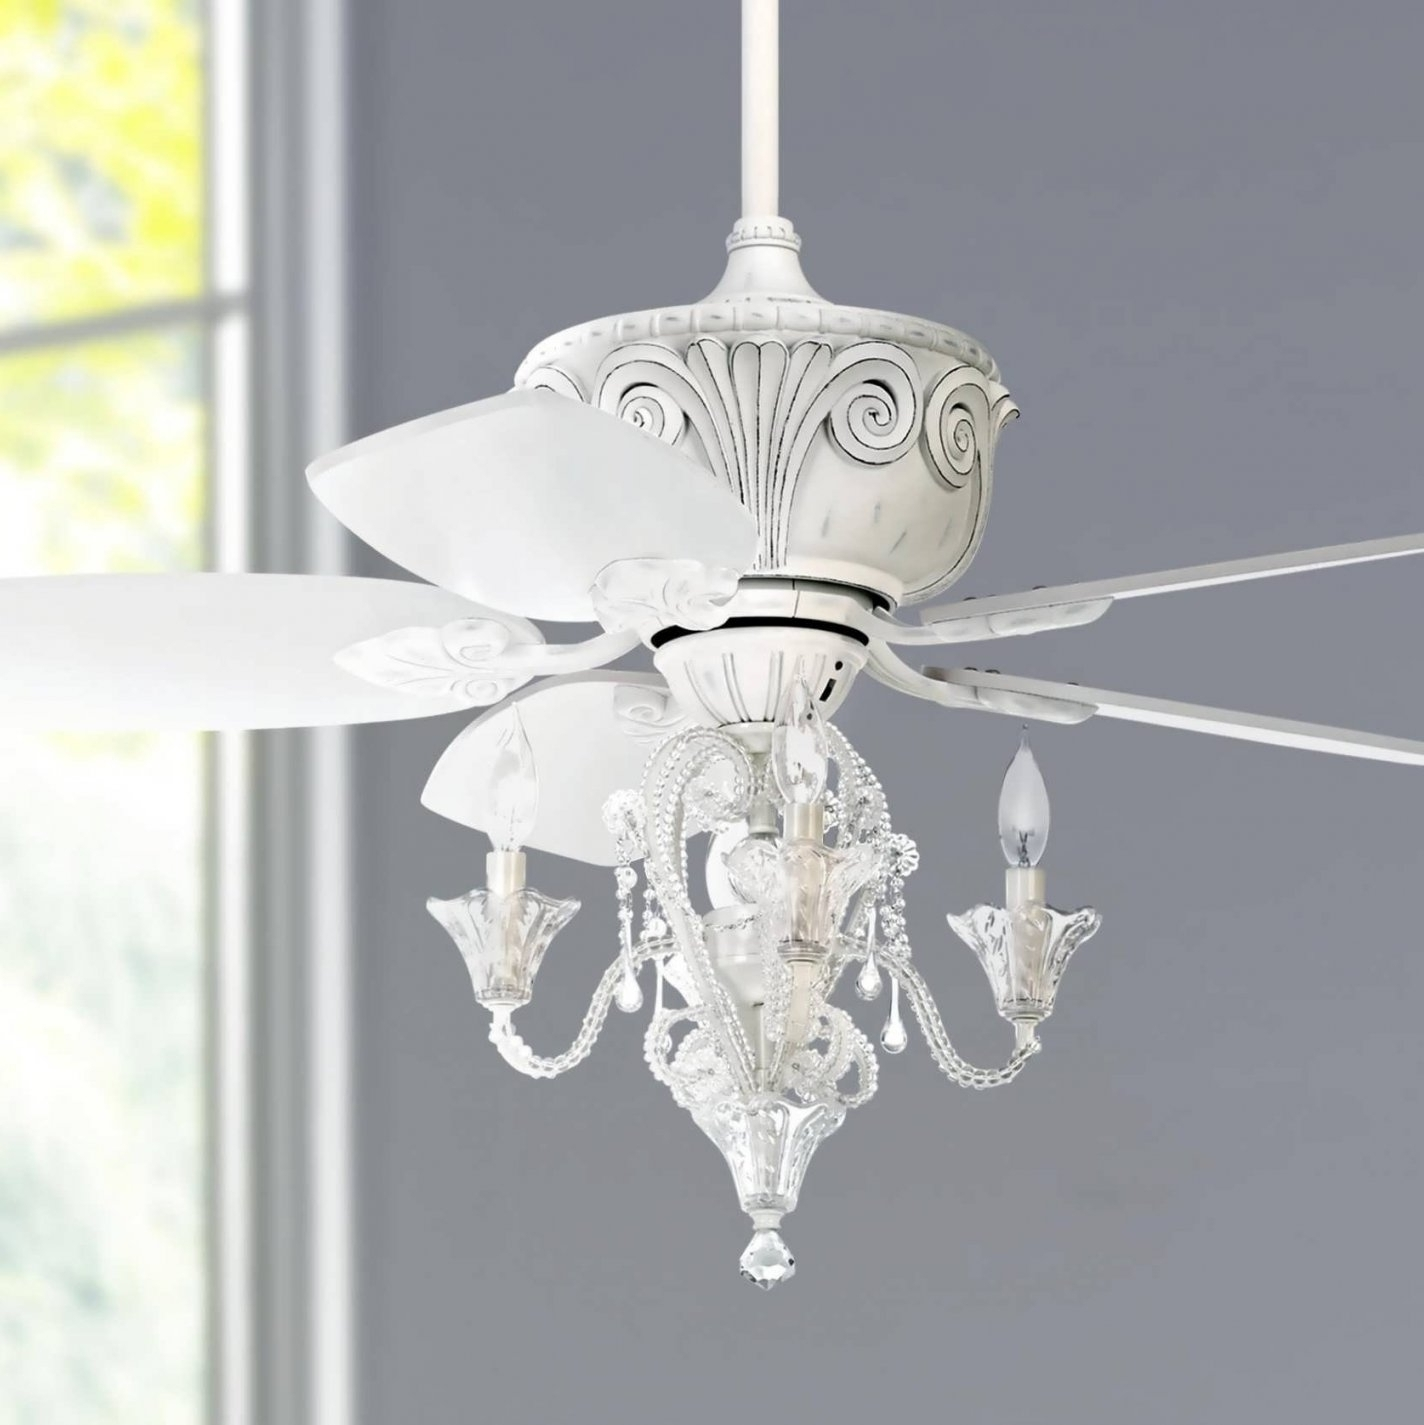 Most Recent Beautiful Chandelier Throughout Chandelier Ceiling Fan Light Kit Beautiful Chandelier Black (View 14 of 20)